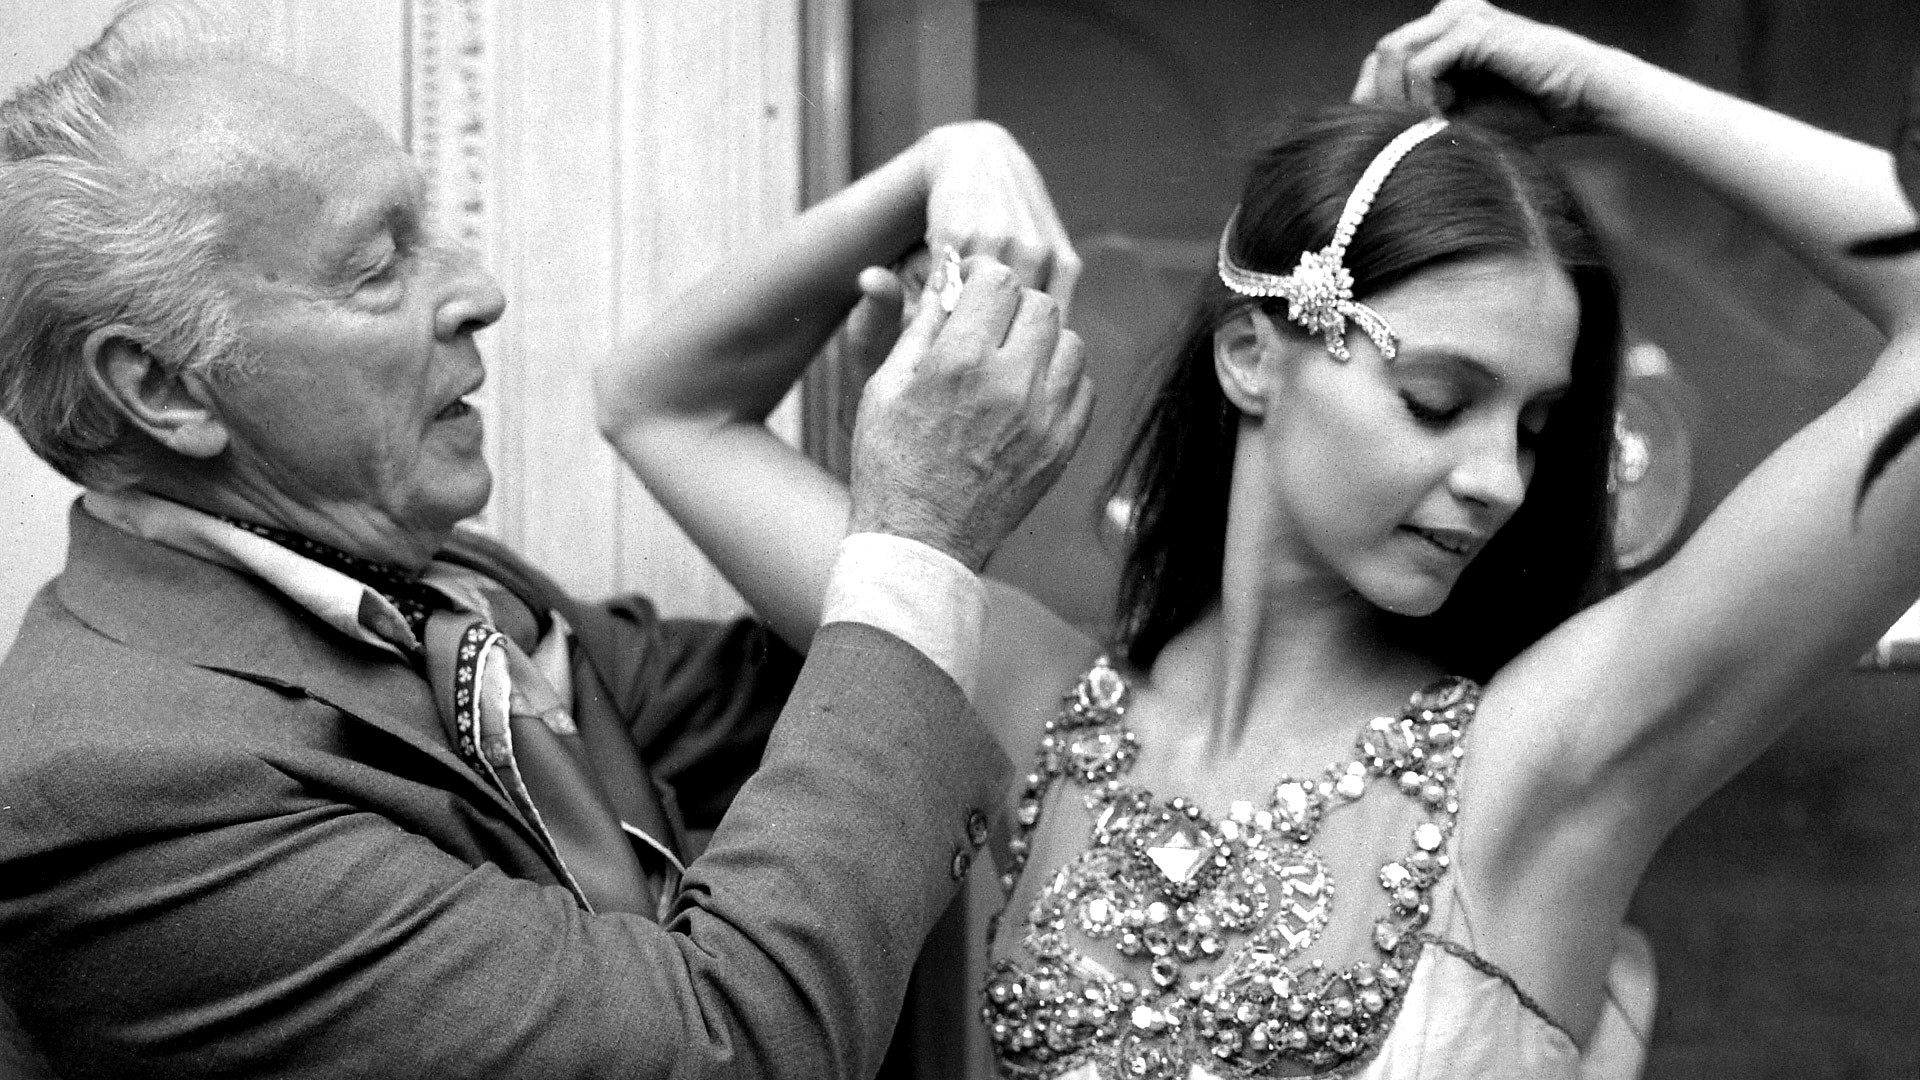 George Balanchine and dancer Suzanne Farrell wearing Van Cleef and Arpels jewelry for Balanchine's ballet